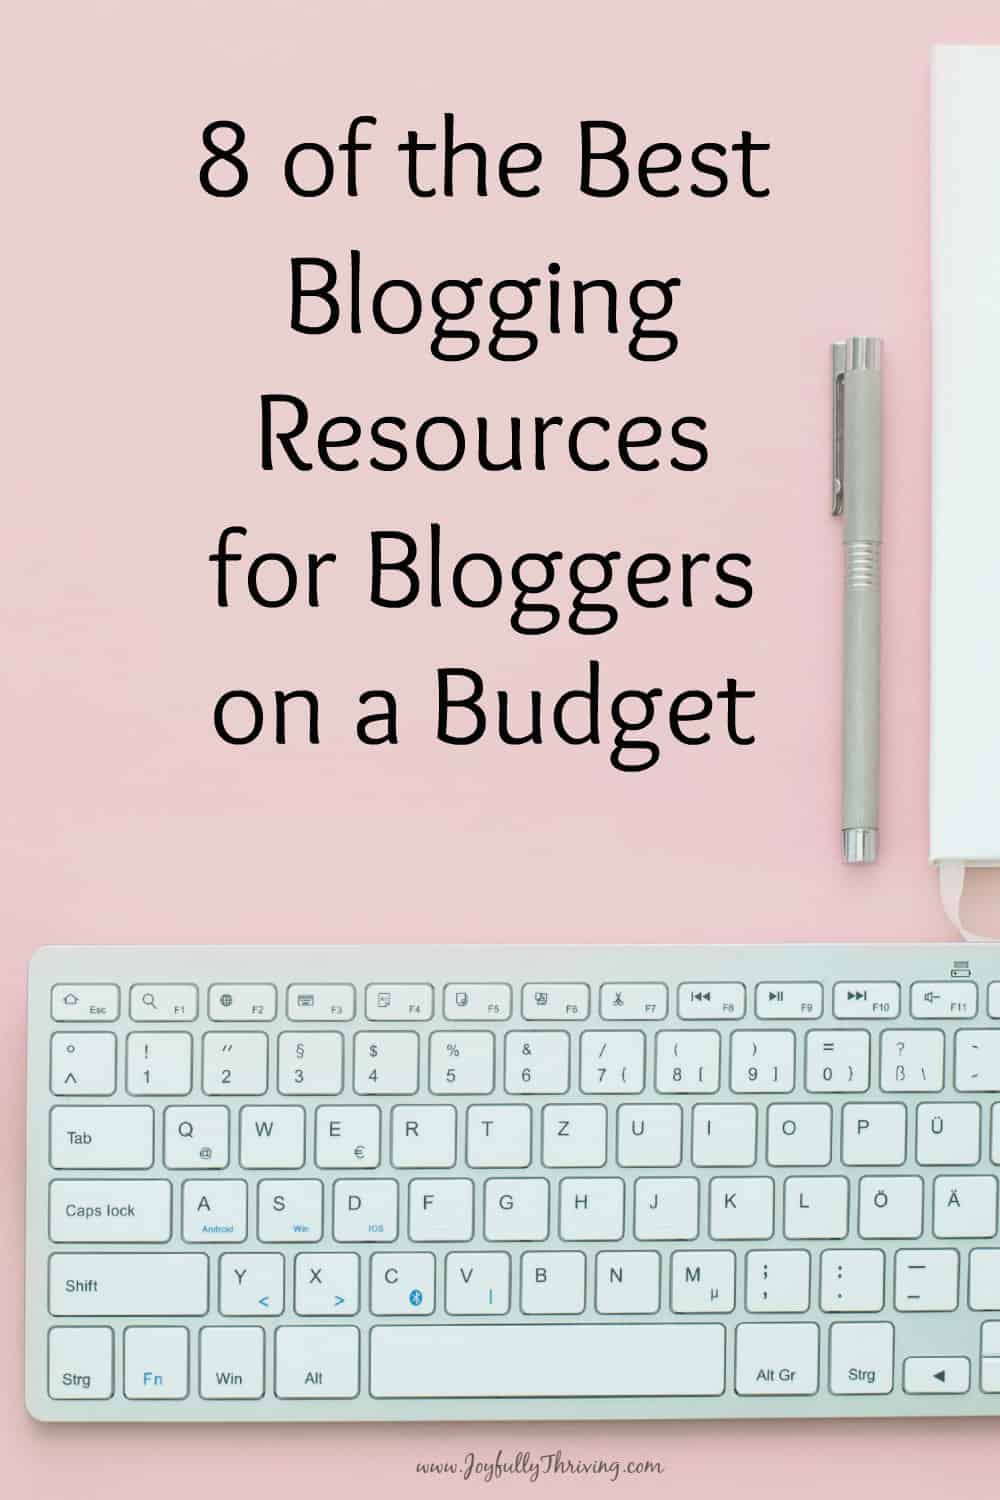 Blogging on a Budget? What blogger isn't? Check out this list for 8 of the best blogging resources for bloggers on a budget. Love it!